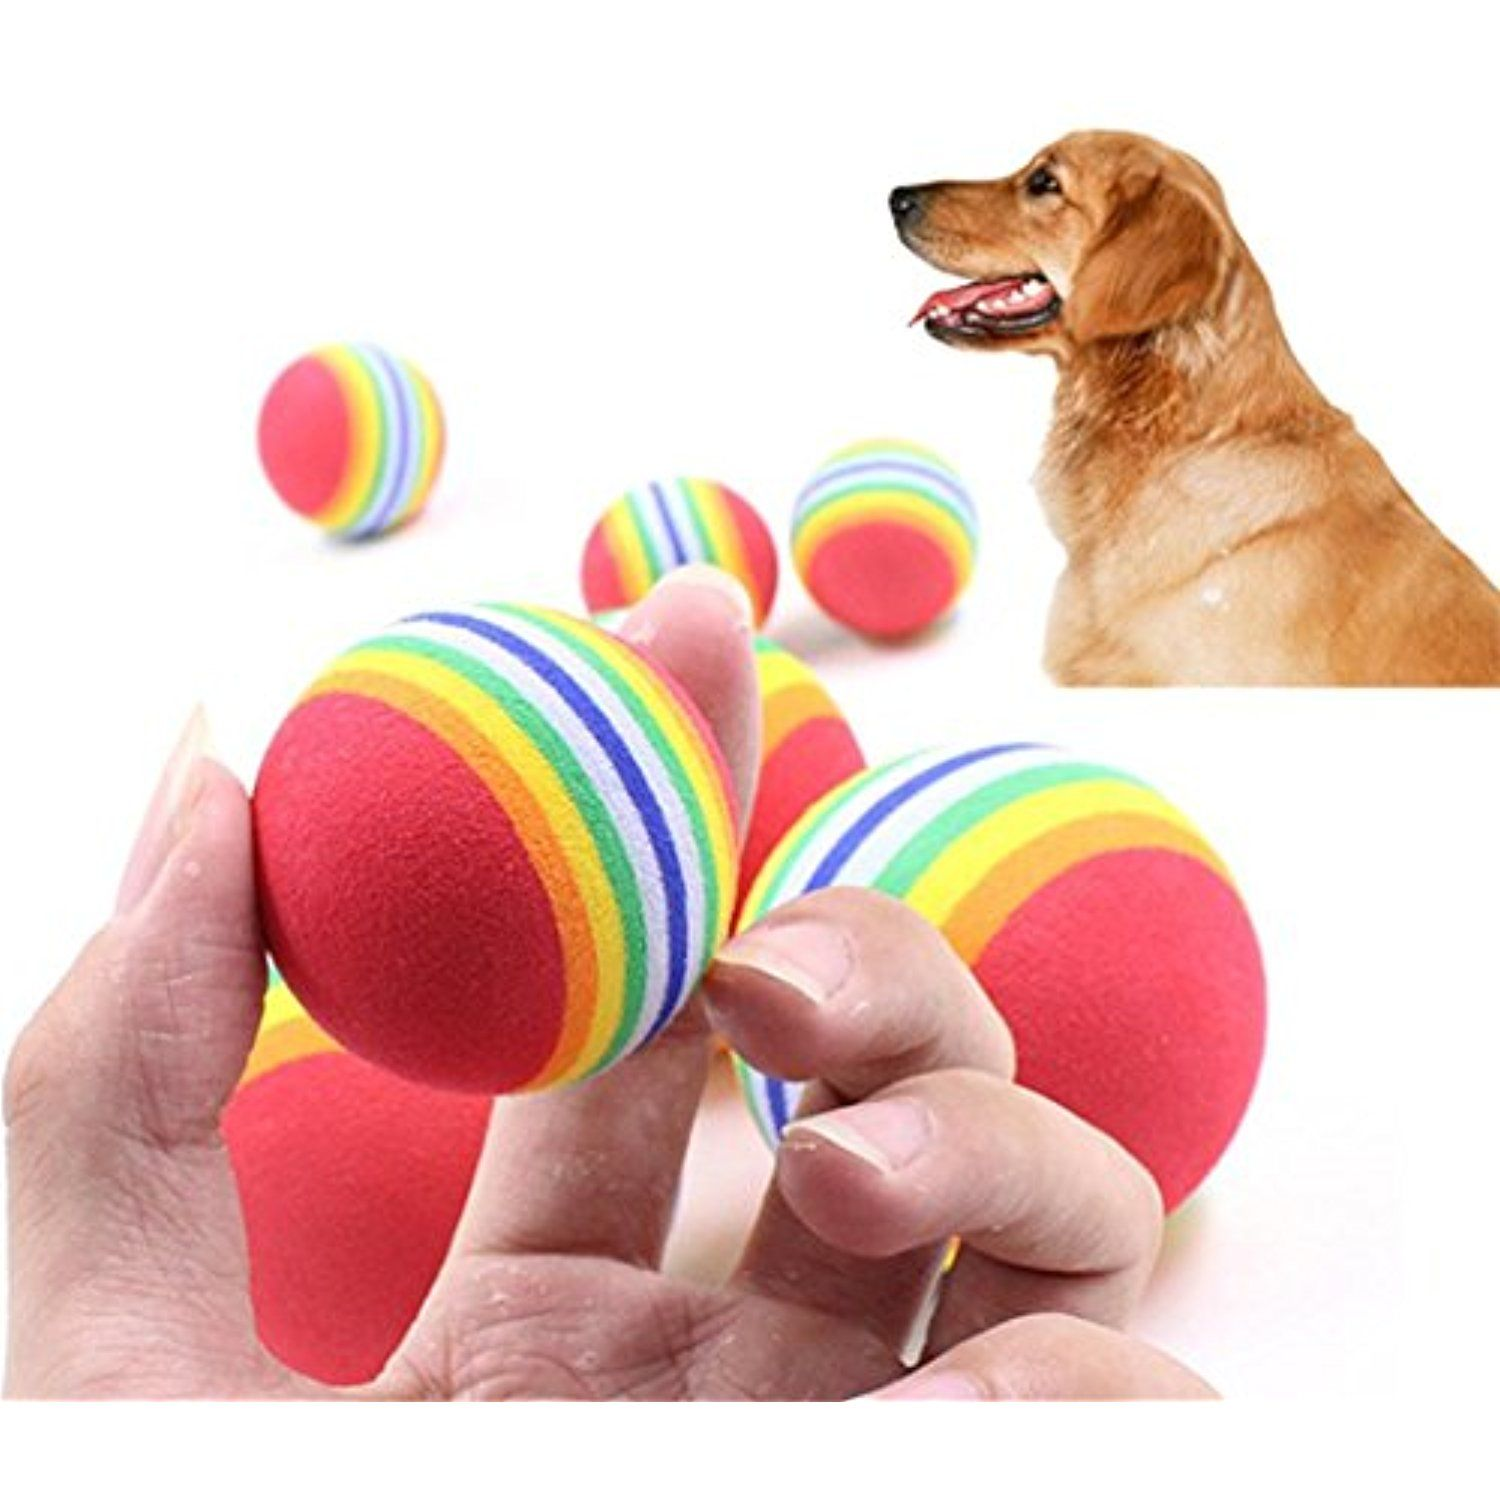 3pcs Dog Chew Toy Tough Rubber Ball Pet Dog Toy Training Chew Play